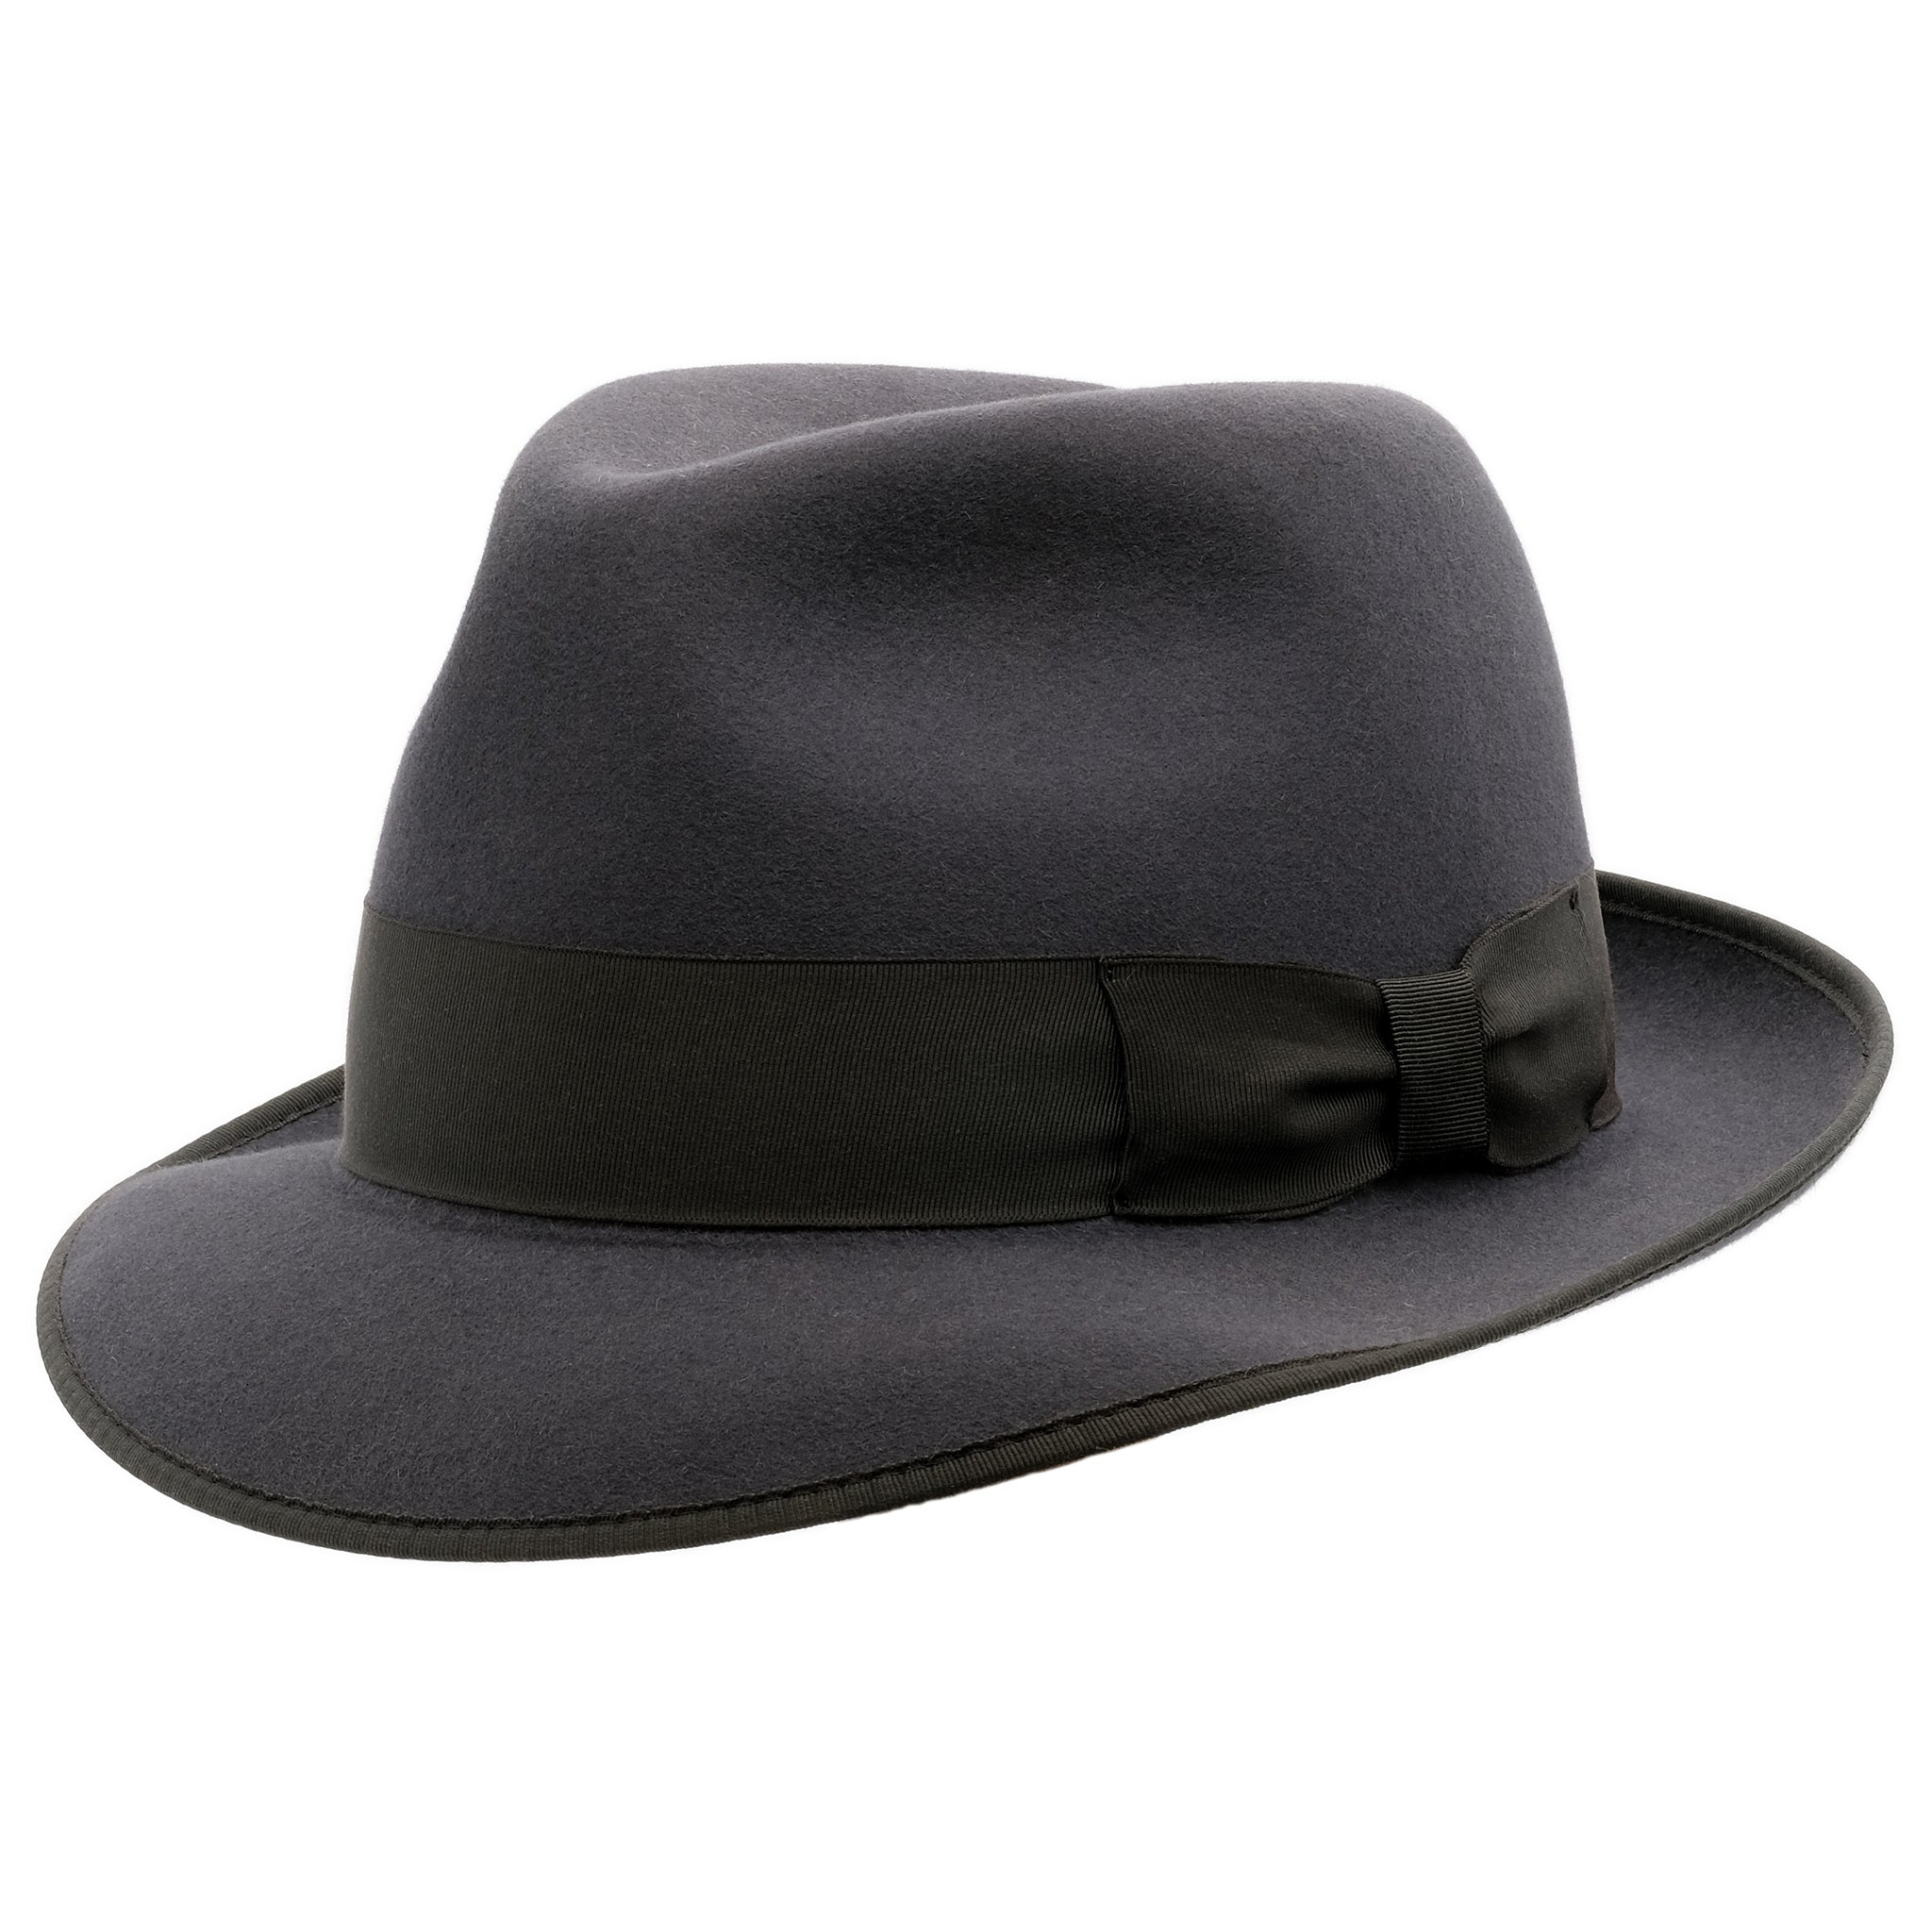 ccdf6a7f101 Akubra Hampton - Carbon Grey